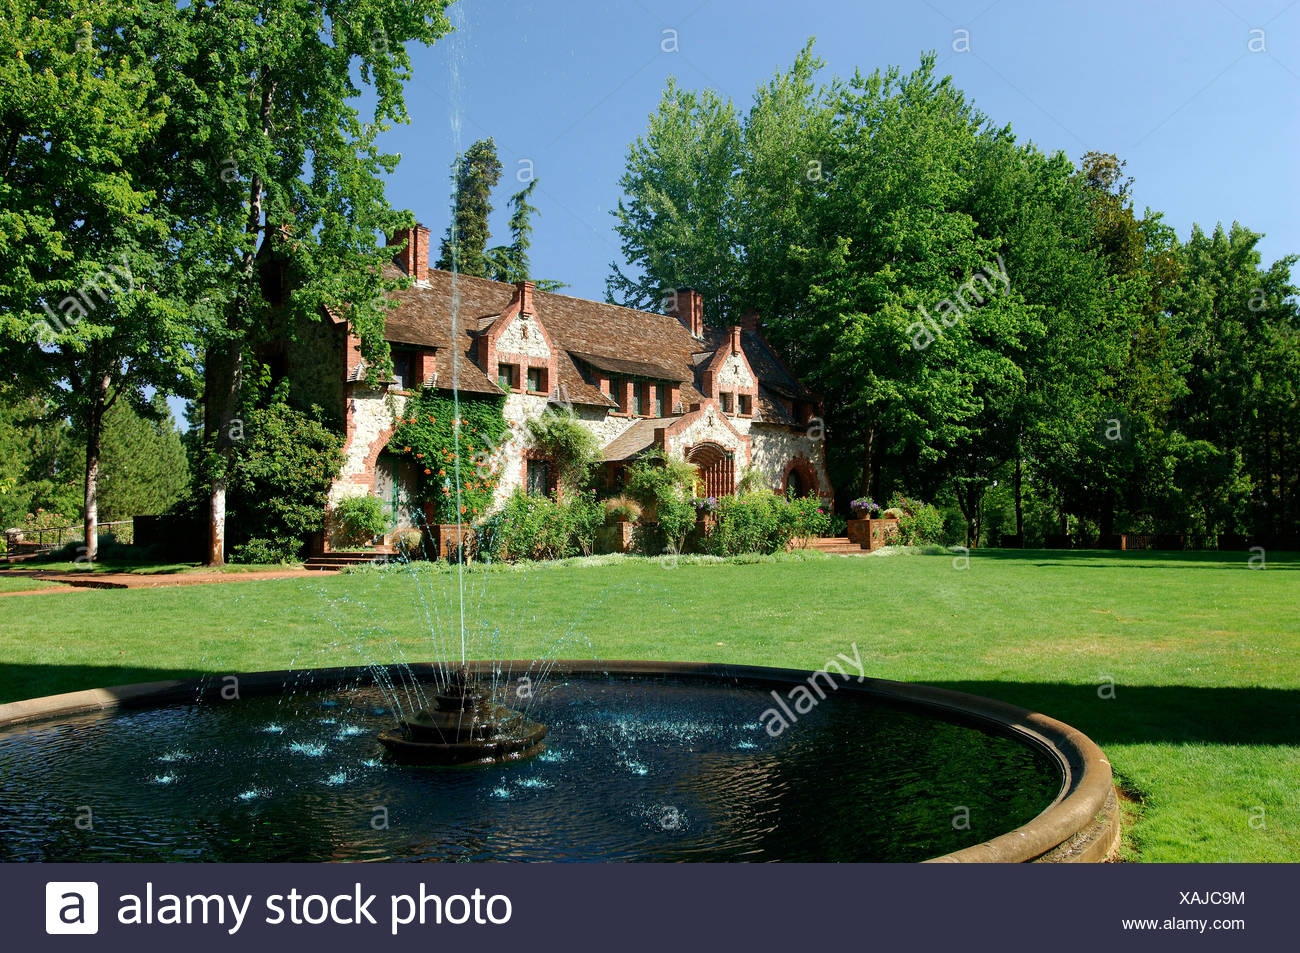 Usa Grass Valley California Empire Cottage Empire Mine State Historic Park Gold Country House Villa Park Garden United States - Stock Image